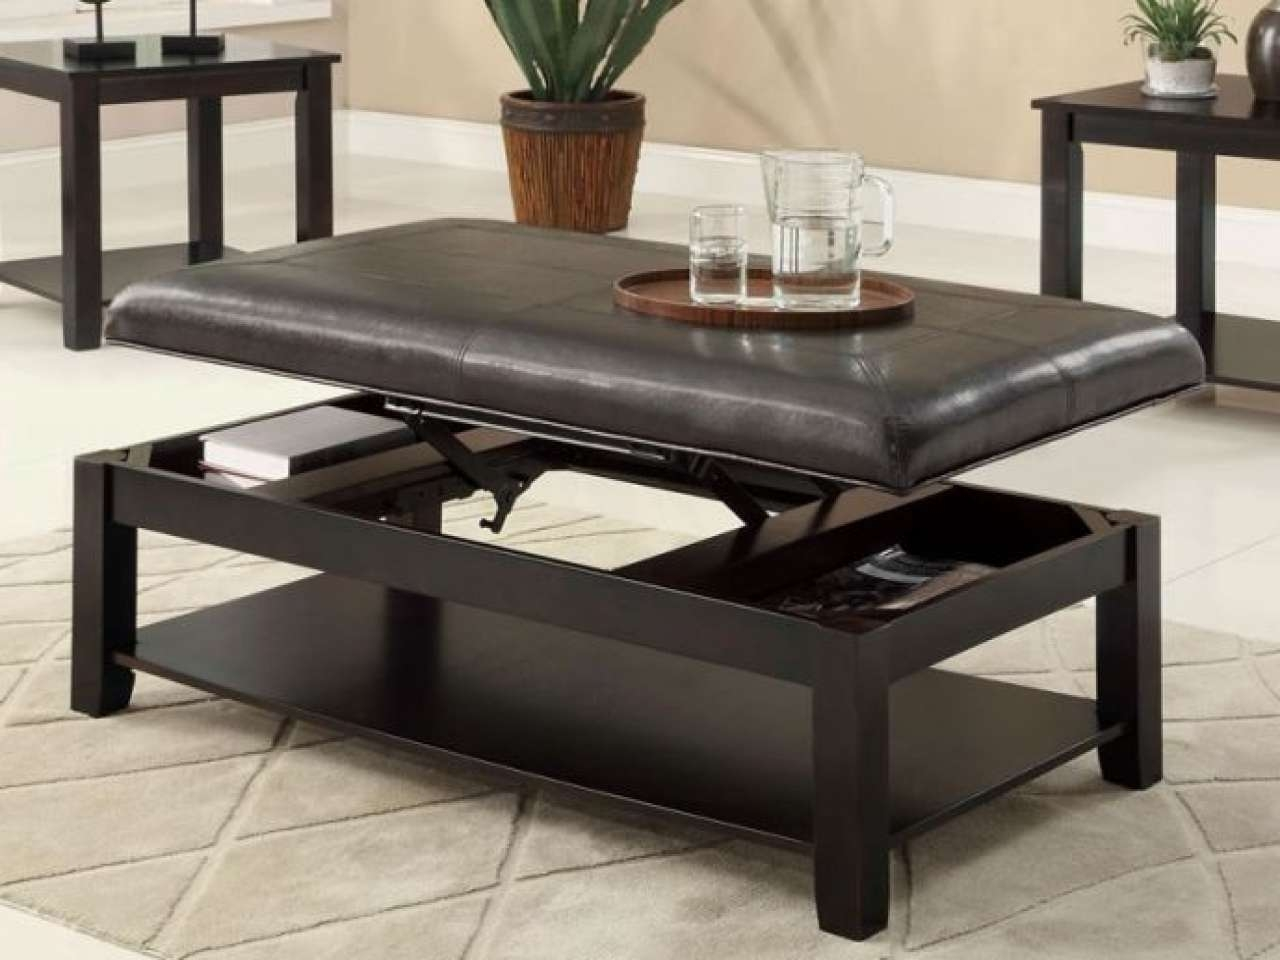 Coffee Tables : Lift Top Storage Ottoman Meijer Home Decor Coffee For Most Up To Date Glass Lift Top Coffee Tables (View 10 of 20)